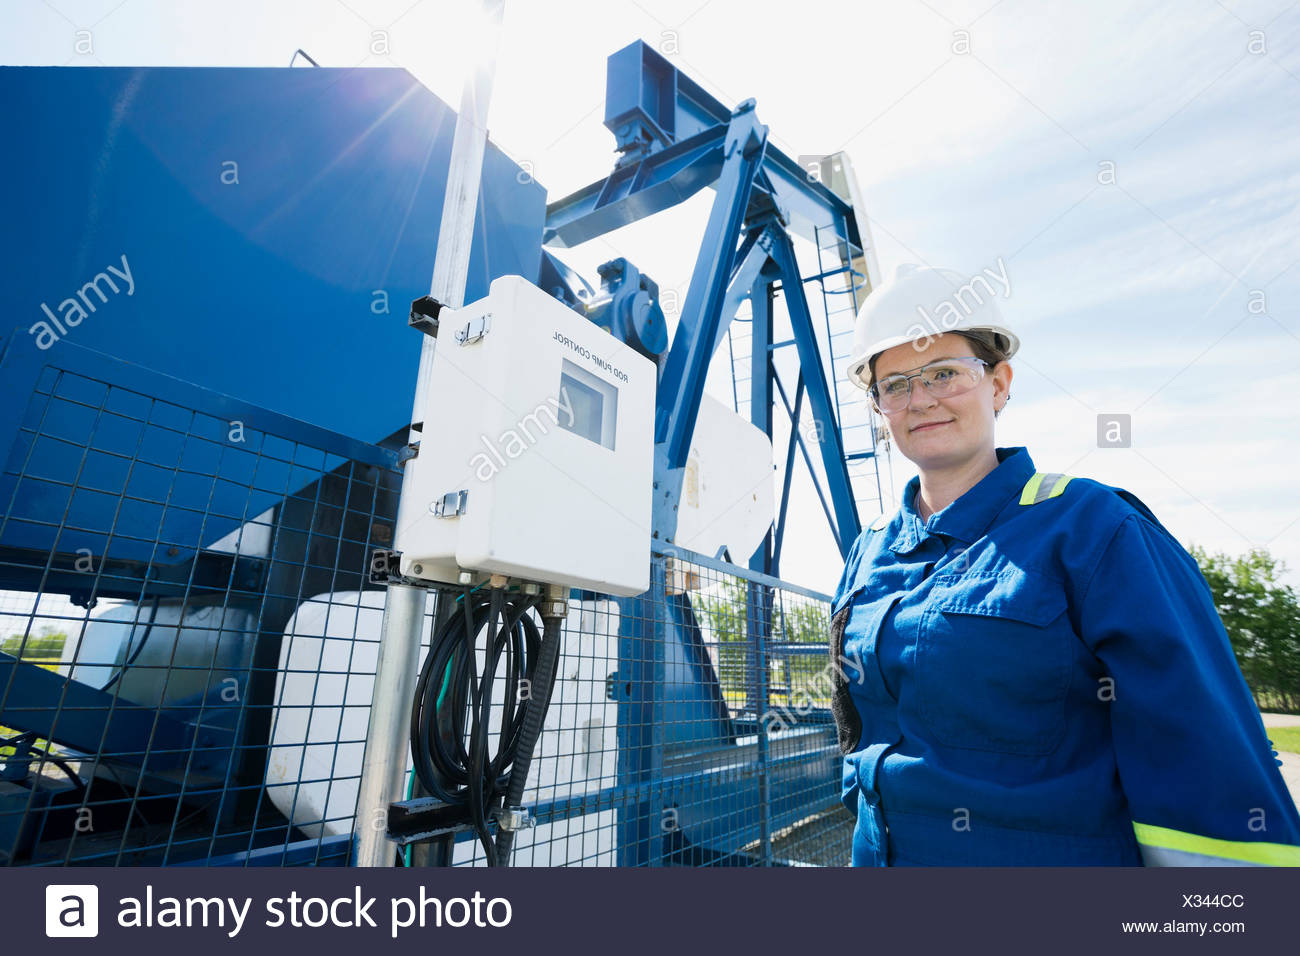 Female worker at oil well - Stock Image